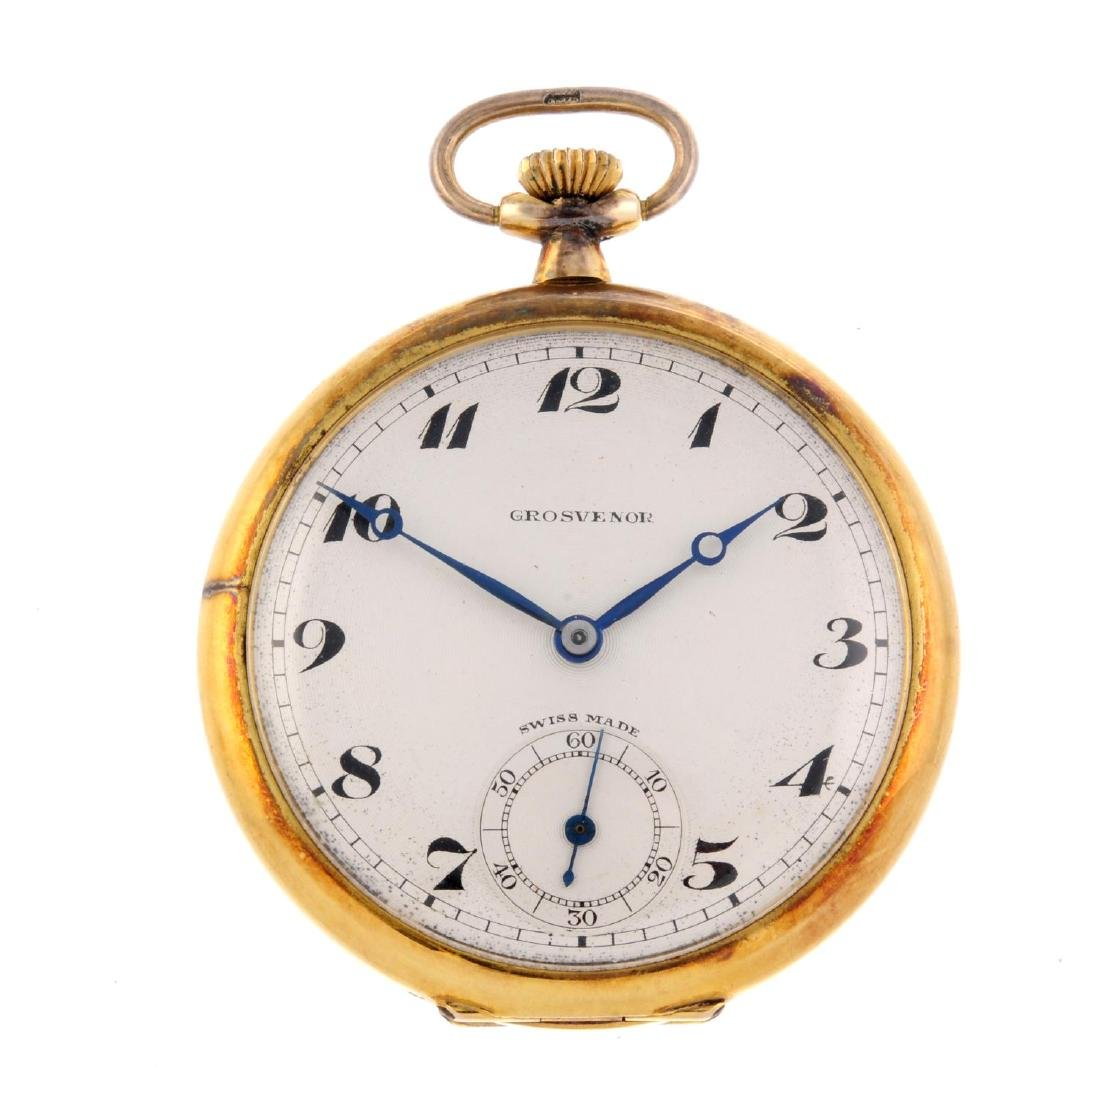 An open face pocket watch by Grosvenor. 9ct yellow gold